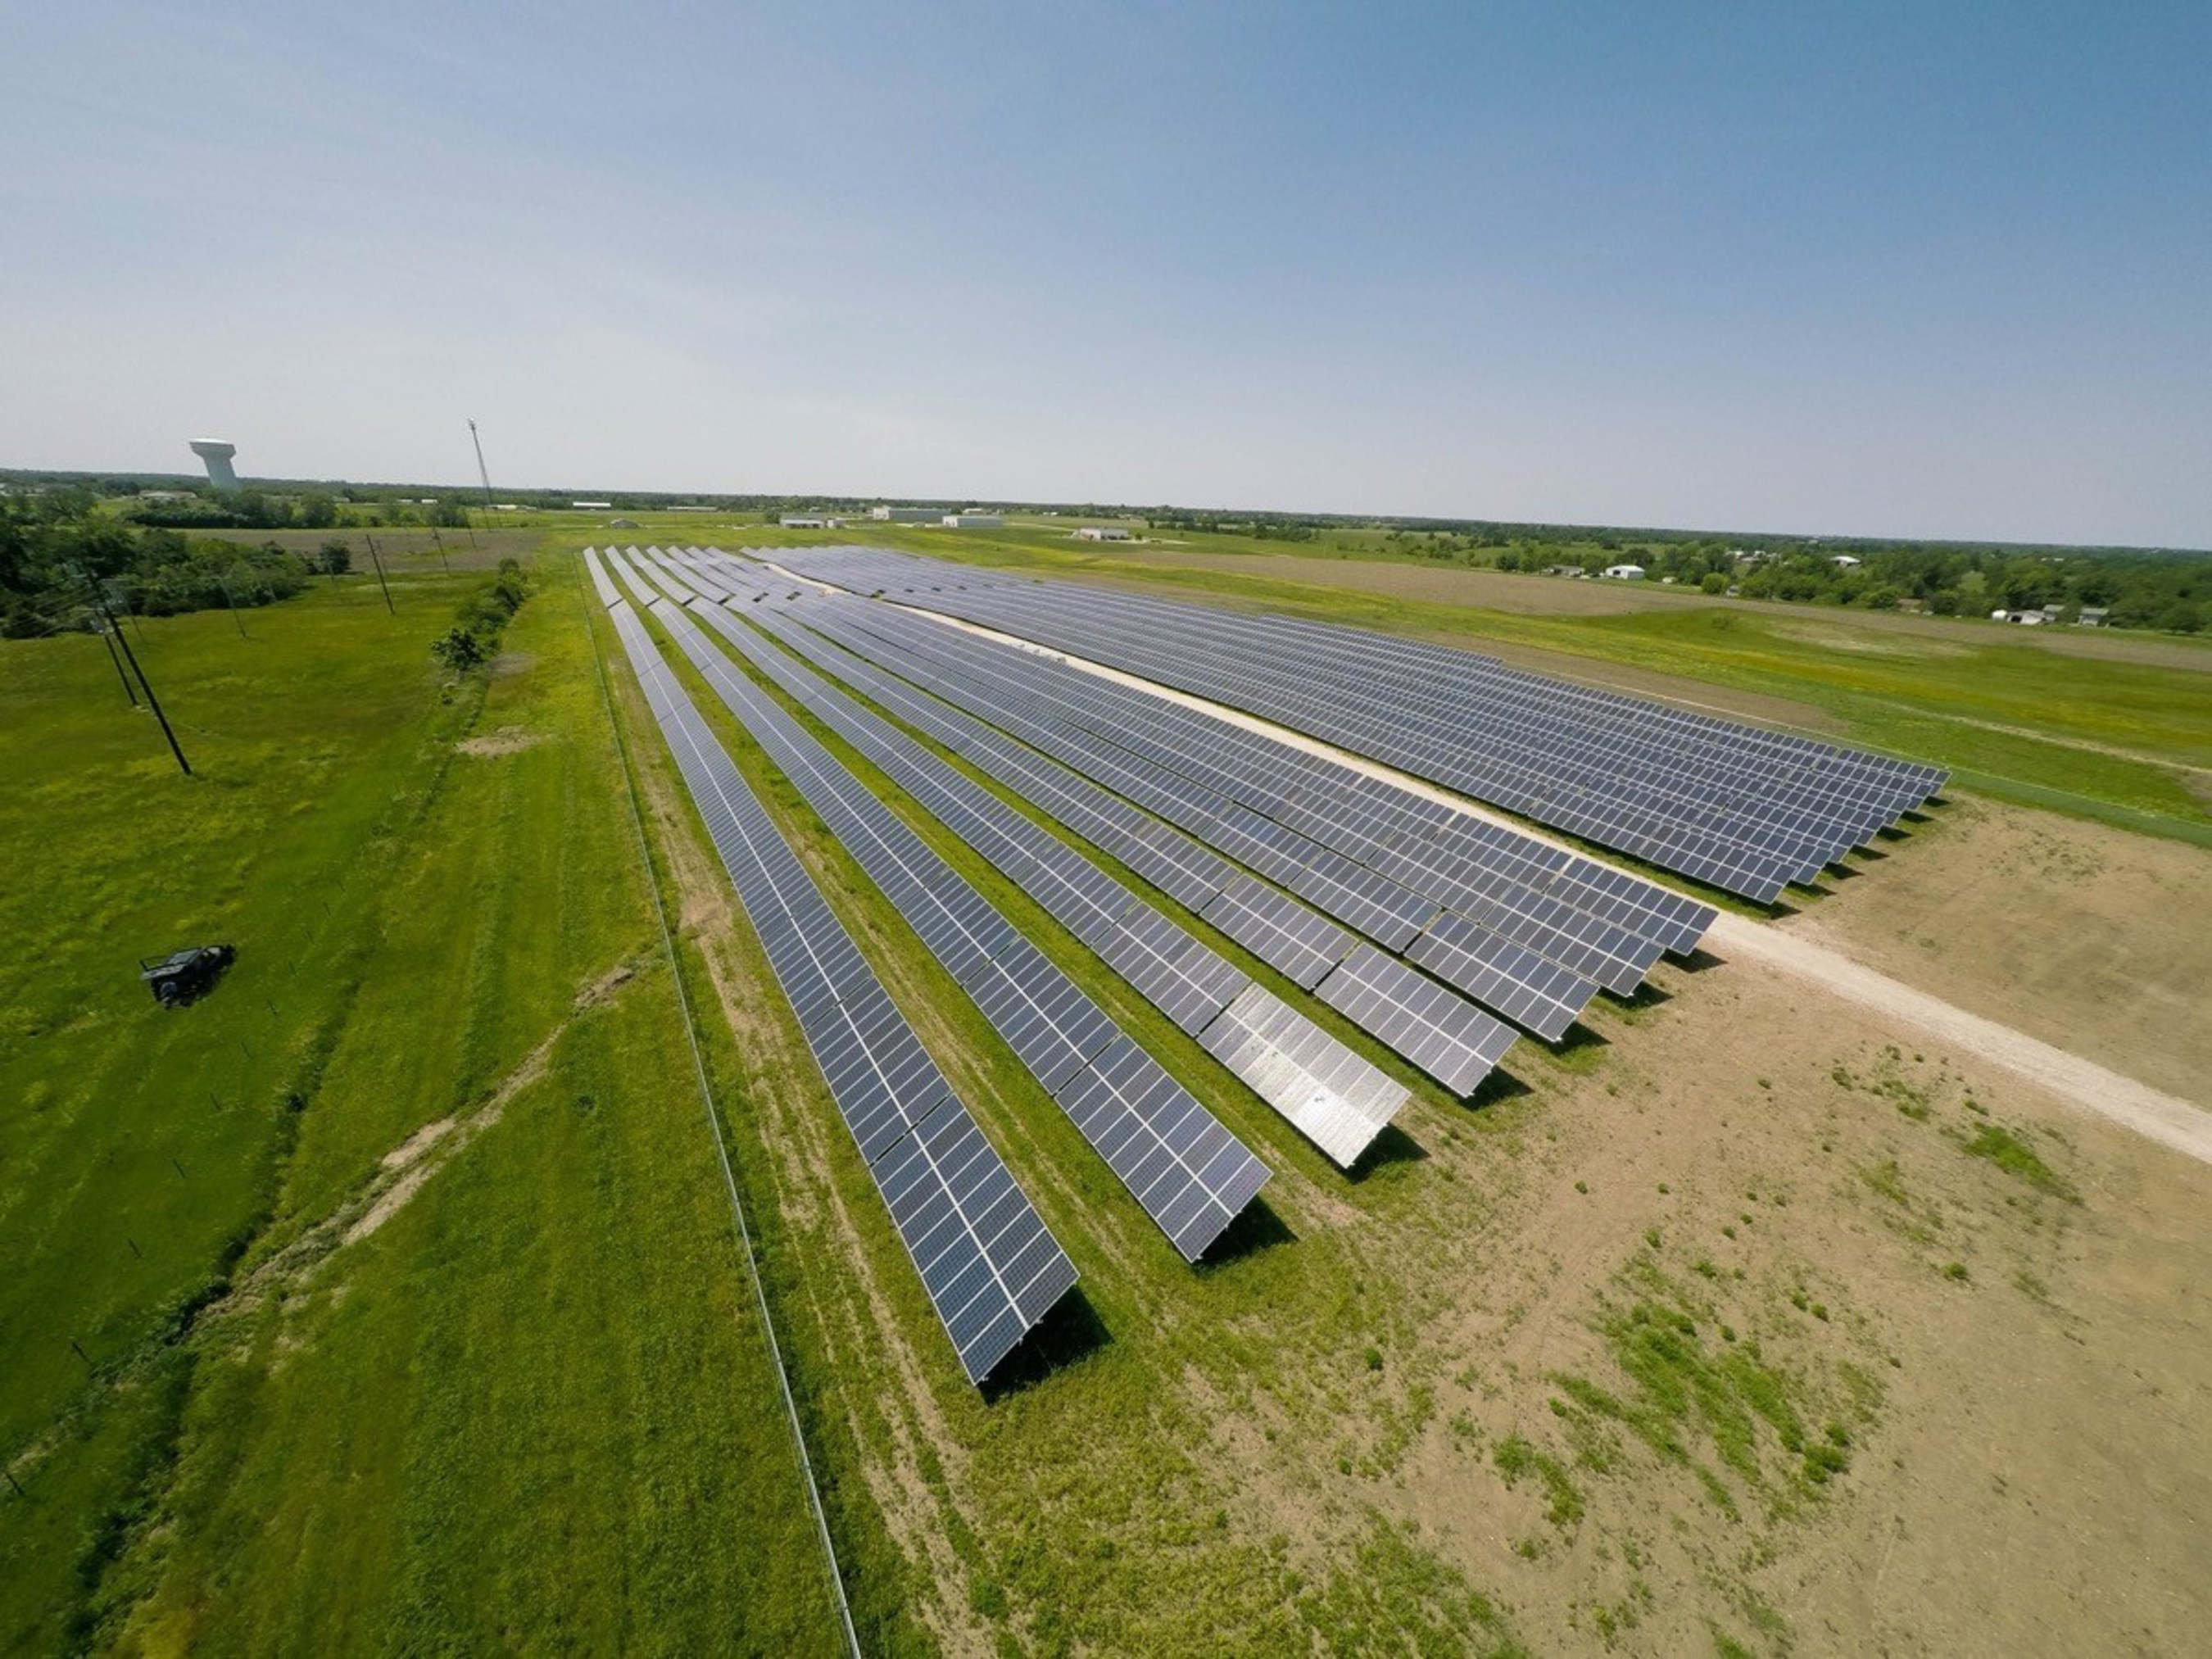 The Macon Missouri solar farm is comprised of more than 10,800 solar panels and 30 miles of wiring.